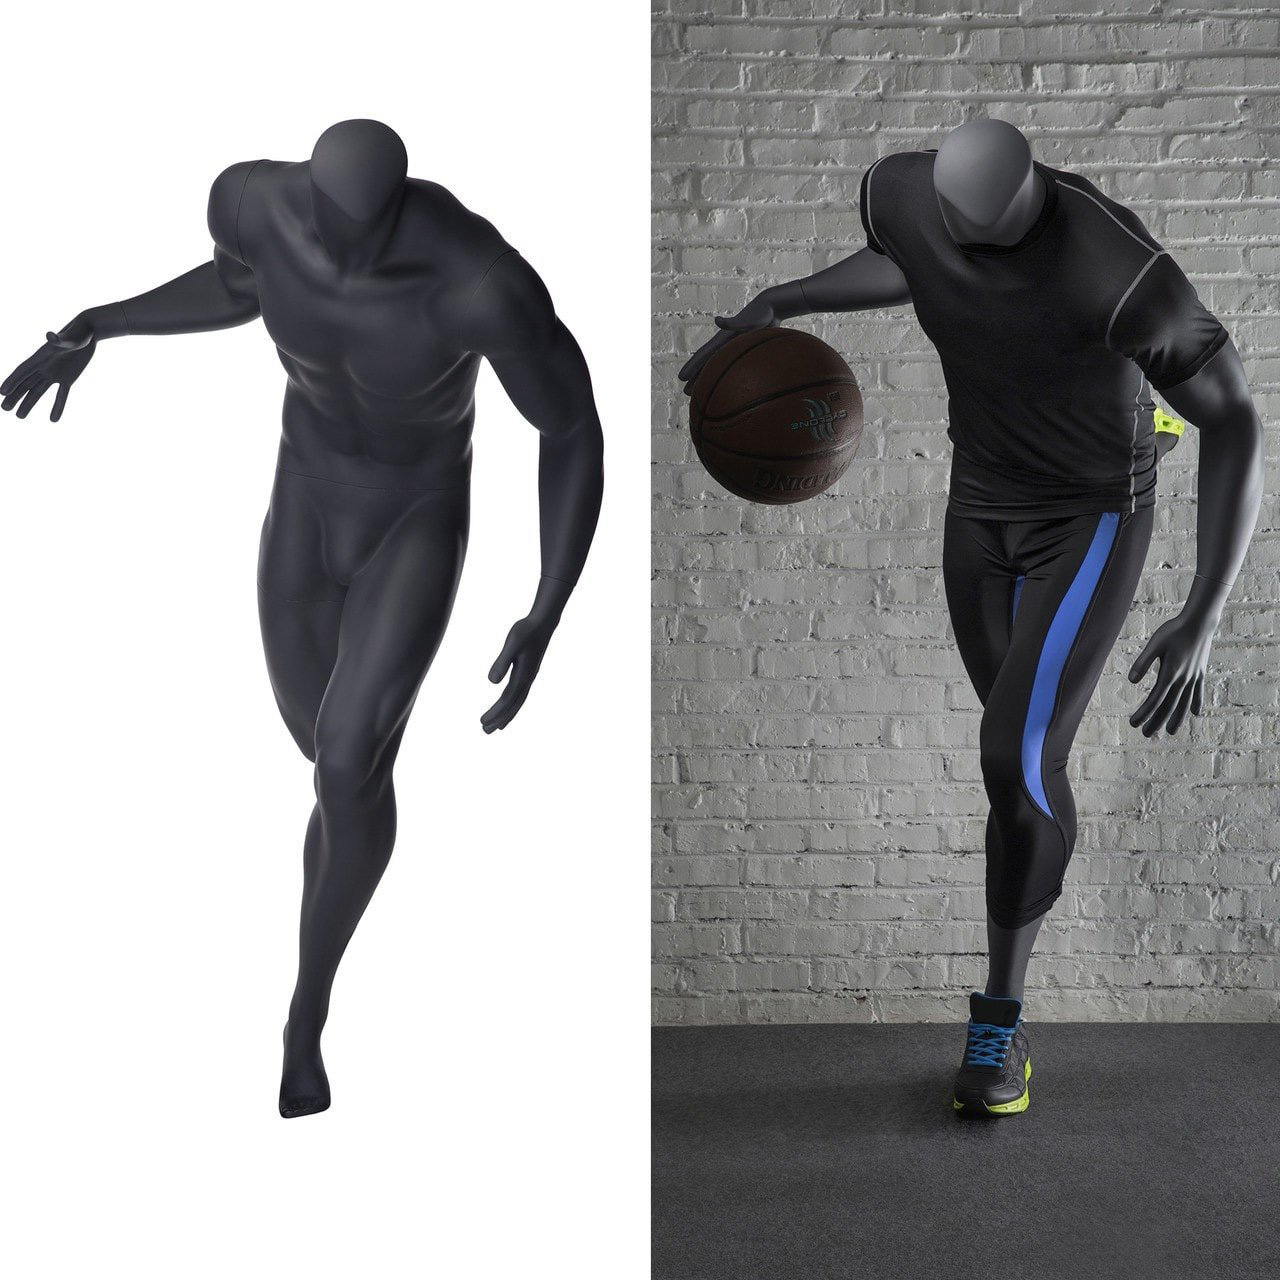 ZM-515 - Cameron - Carbon Gray Headless Sports Mannequin